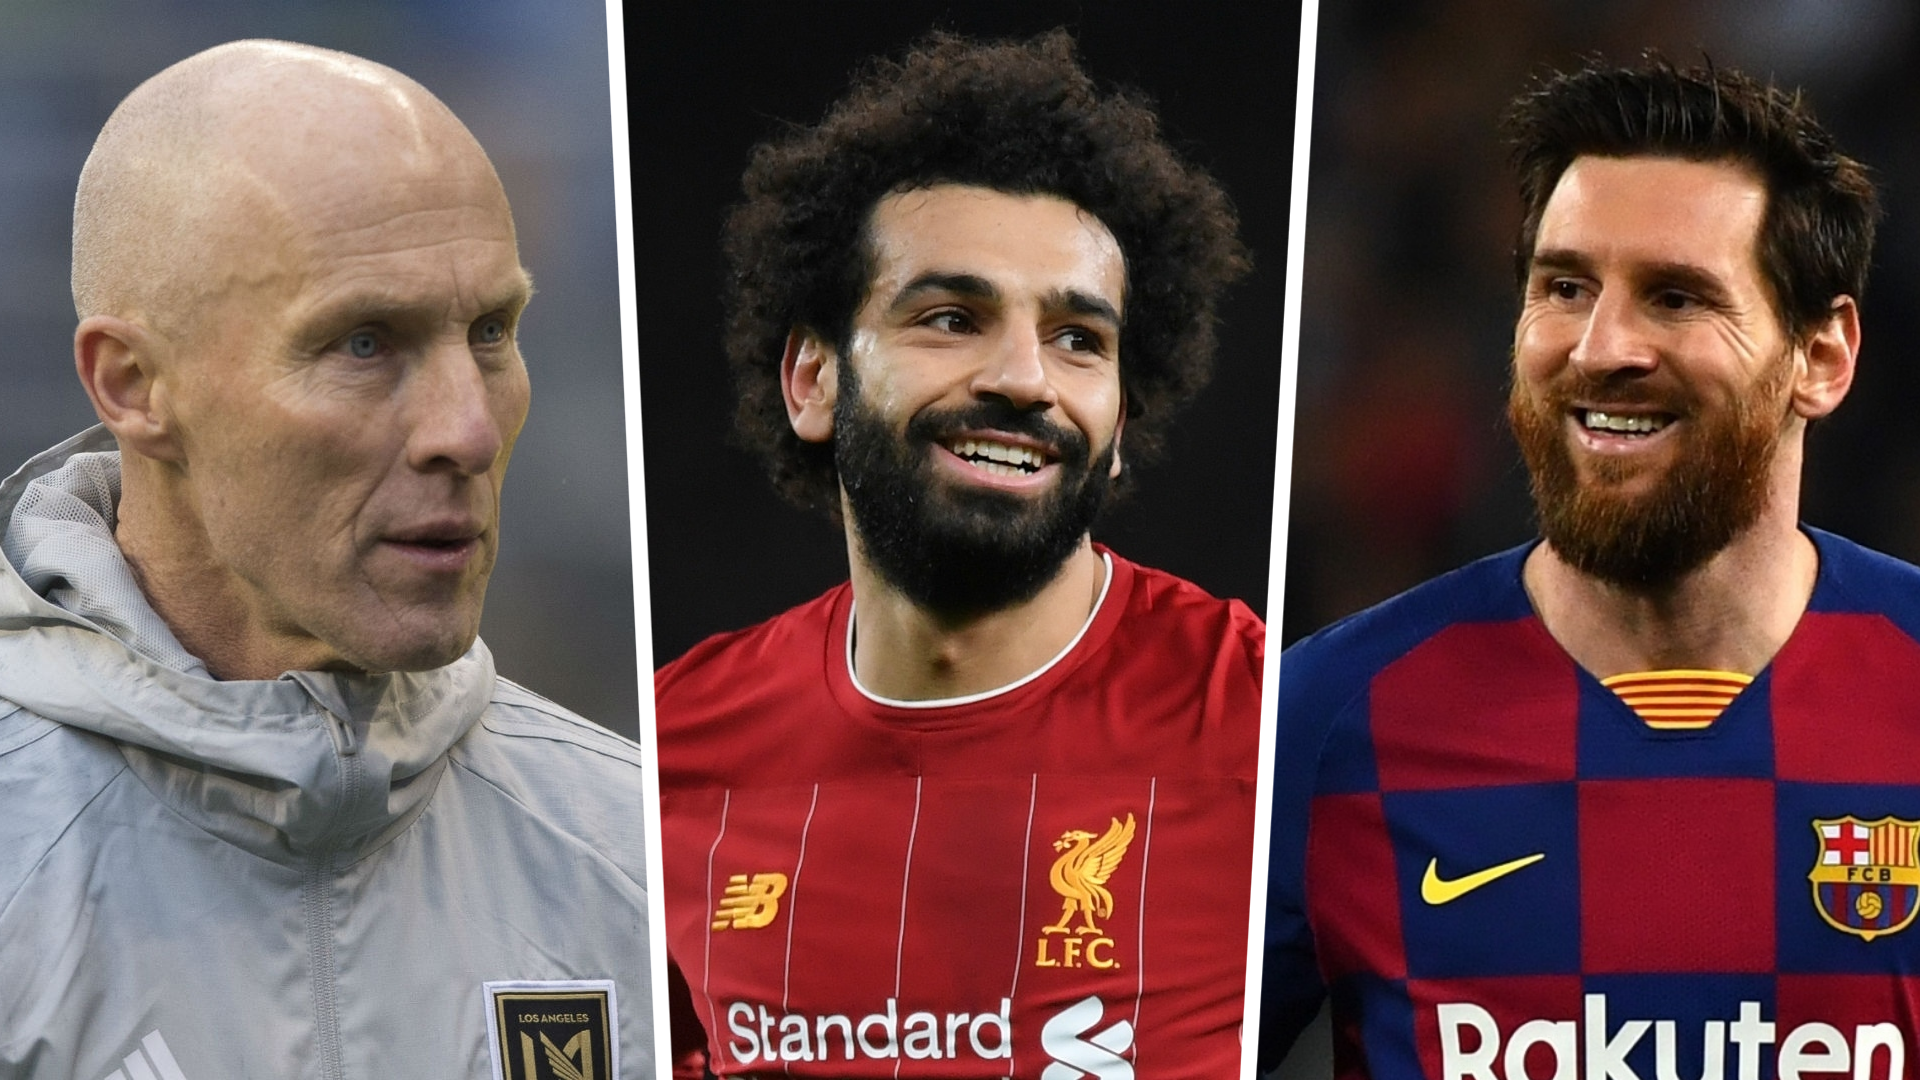 'Watch Messi closely' - Bradley reveals advice that led to Salah becoming 'one of the best players in the world'